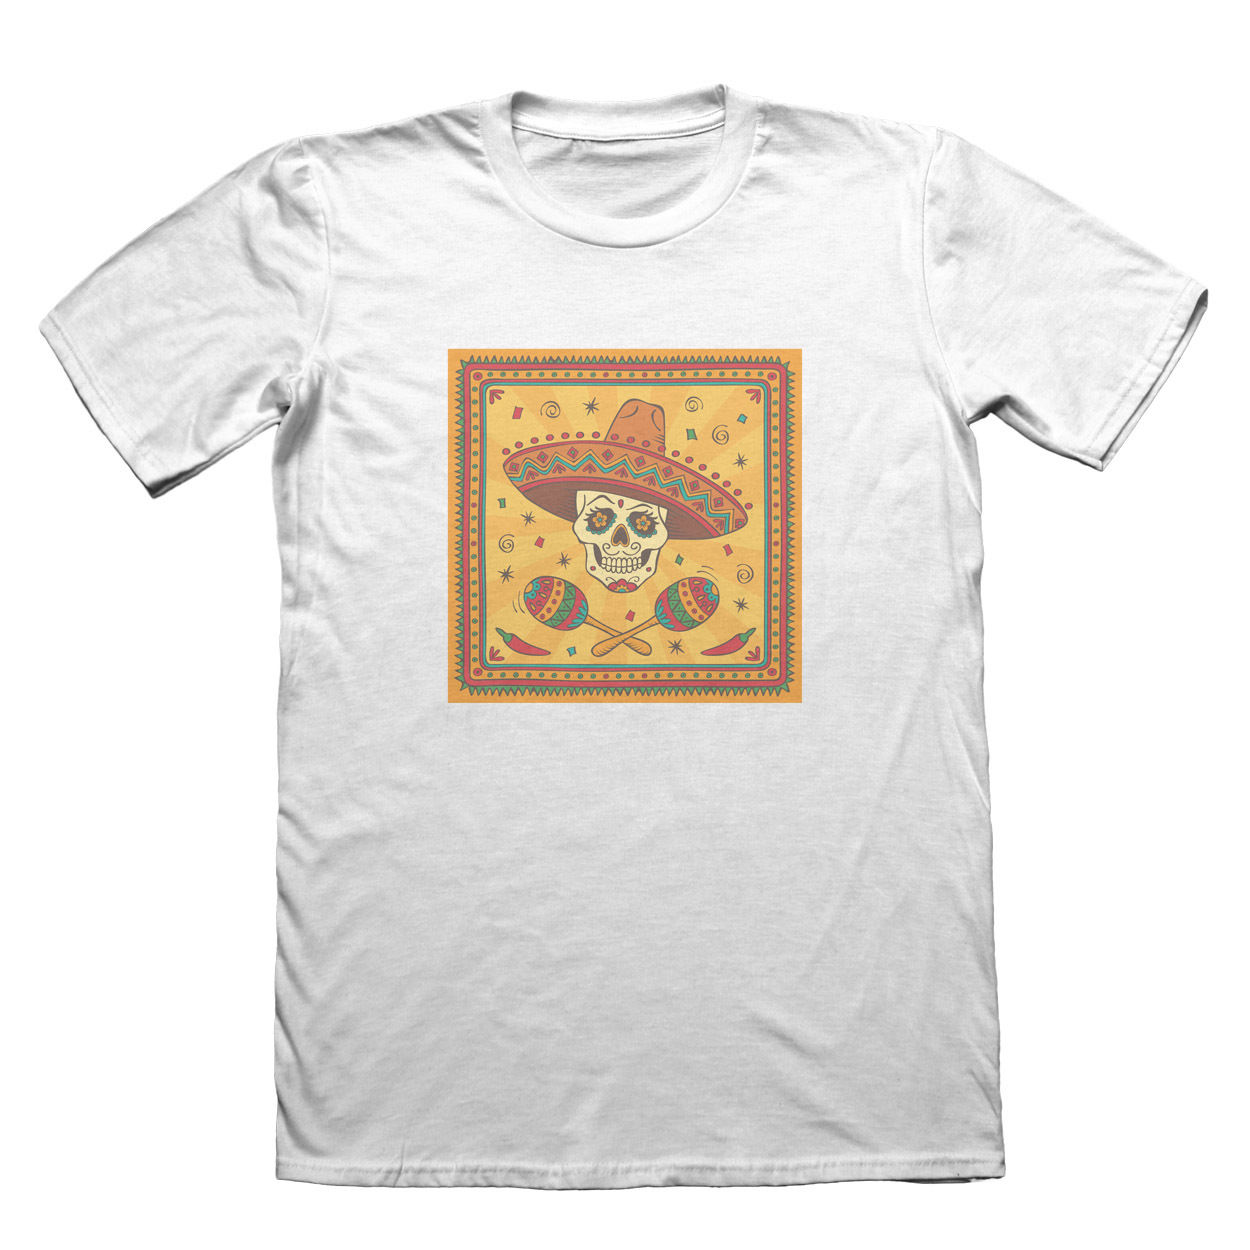 Sugar Skull with Sombrero T-Shirt - Mens Fathers Day Christmas Gift Men 2018 Summer Round Neck MenS T Shirt